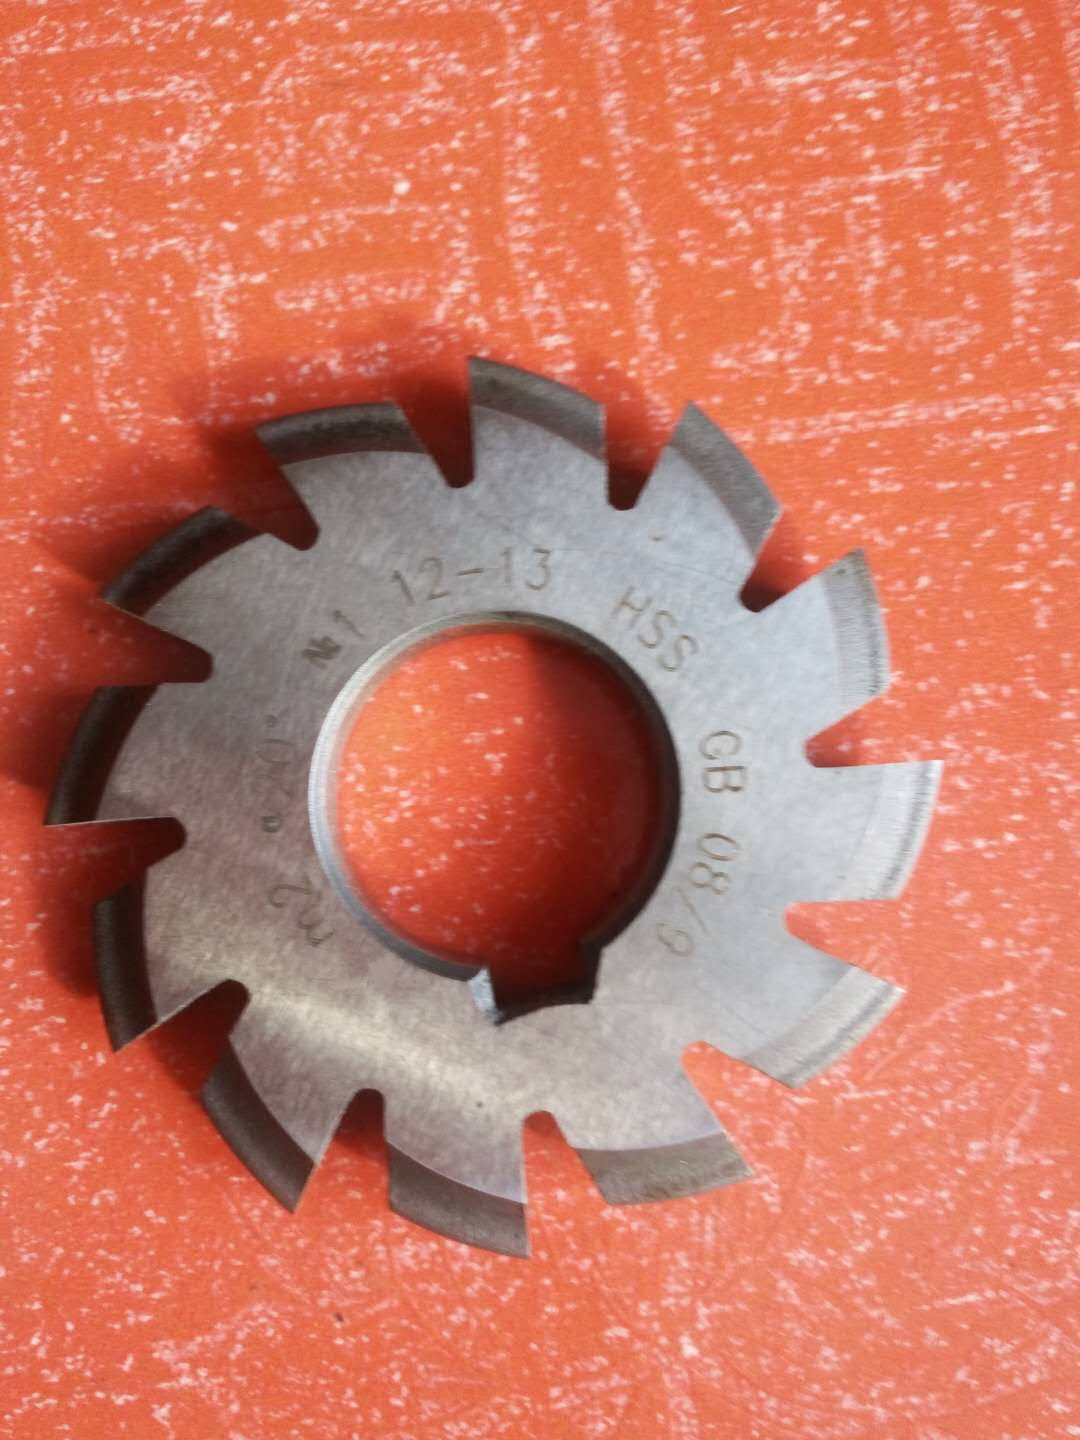 1PC Sold separately Module 2 PA20 Bore22 1#2#3#4#5#6#7#8# Involute Gear Cutters M2 2 pc 1 2 sh 1 2 3 8 rabbeting